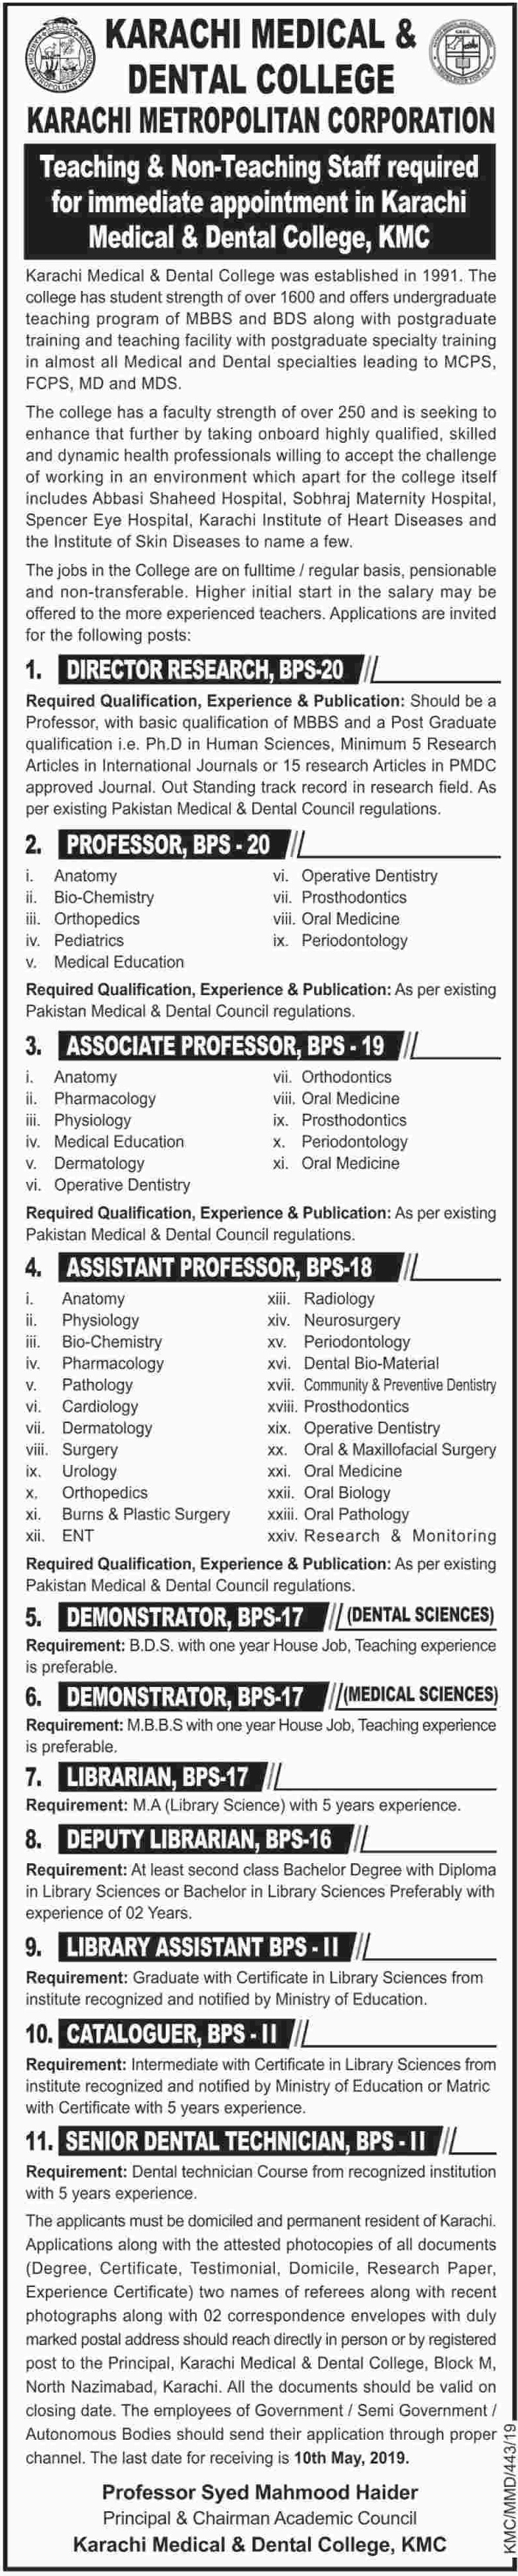 Karachi Medical & Dental College Jobs 2019 KMC Sindh Latest